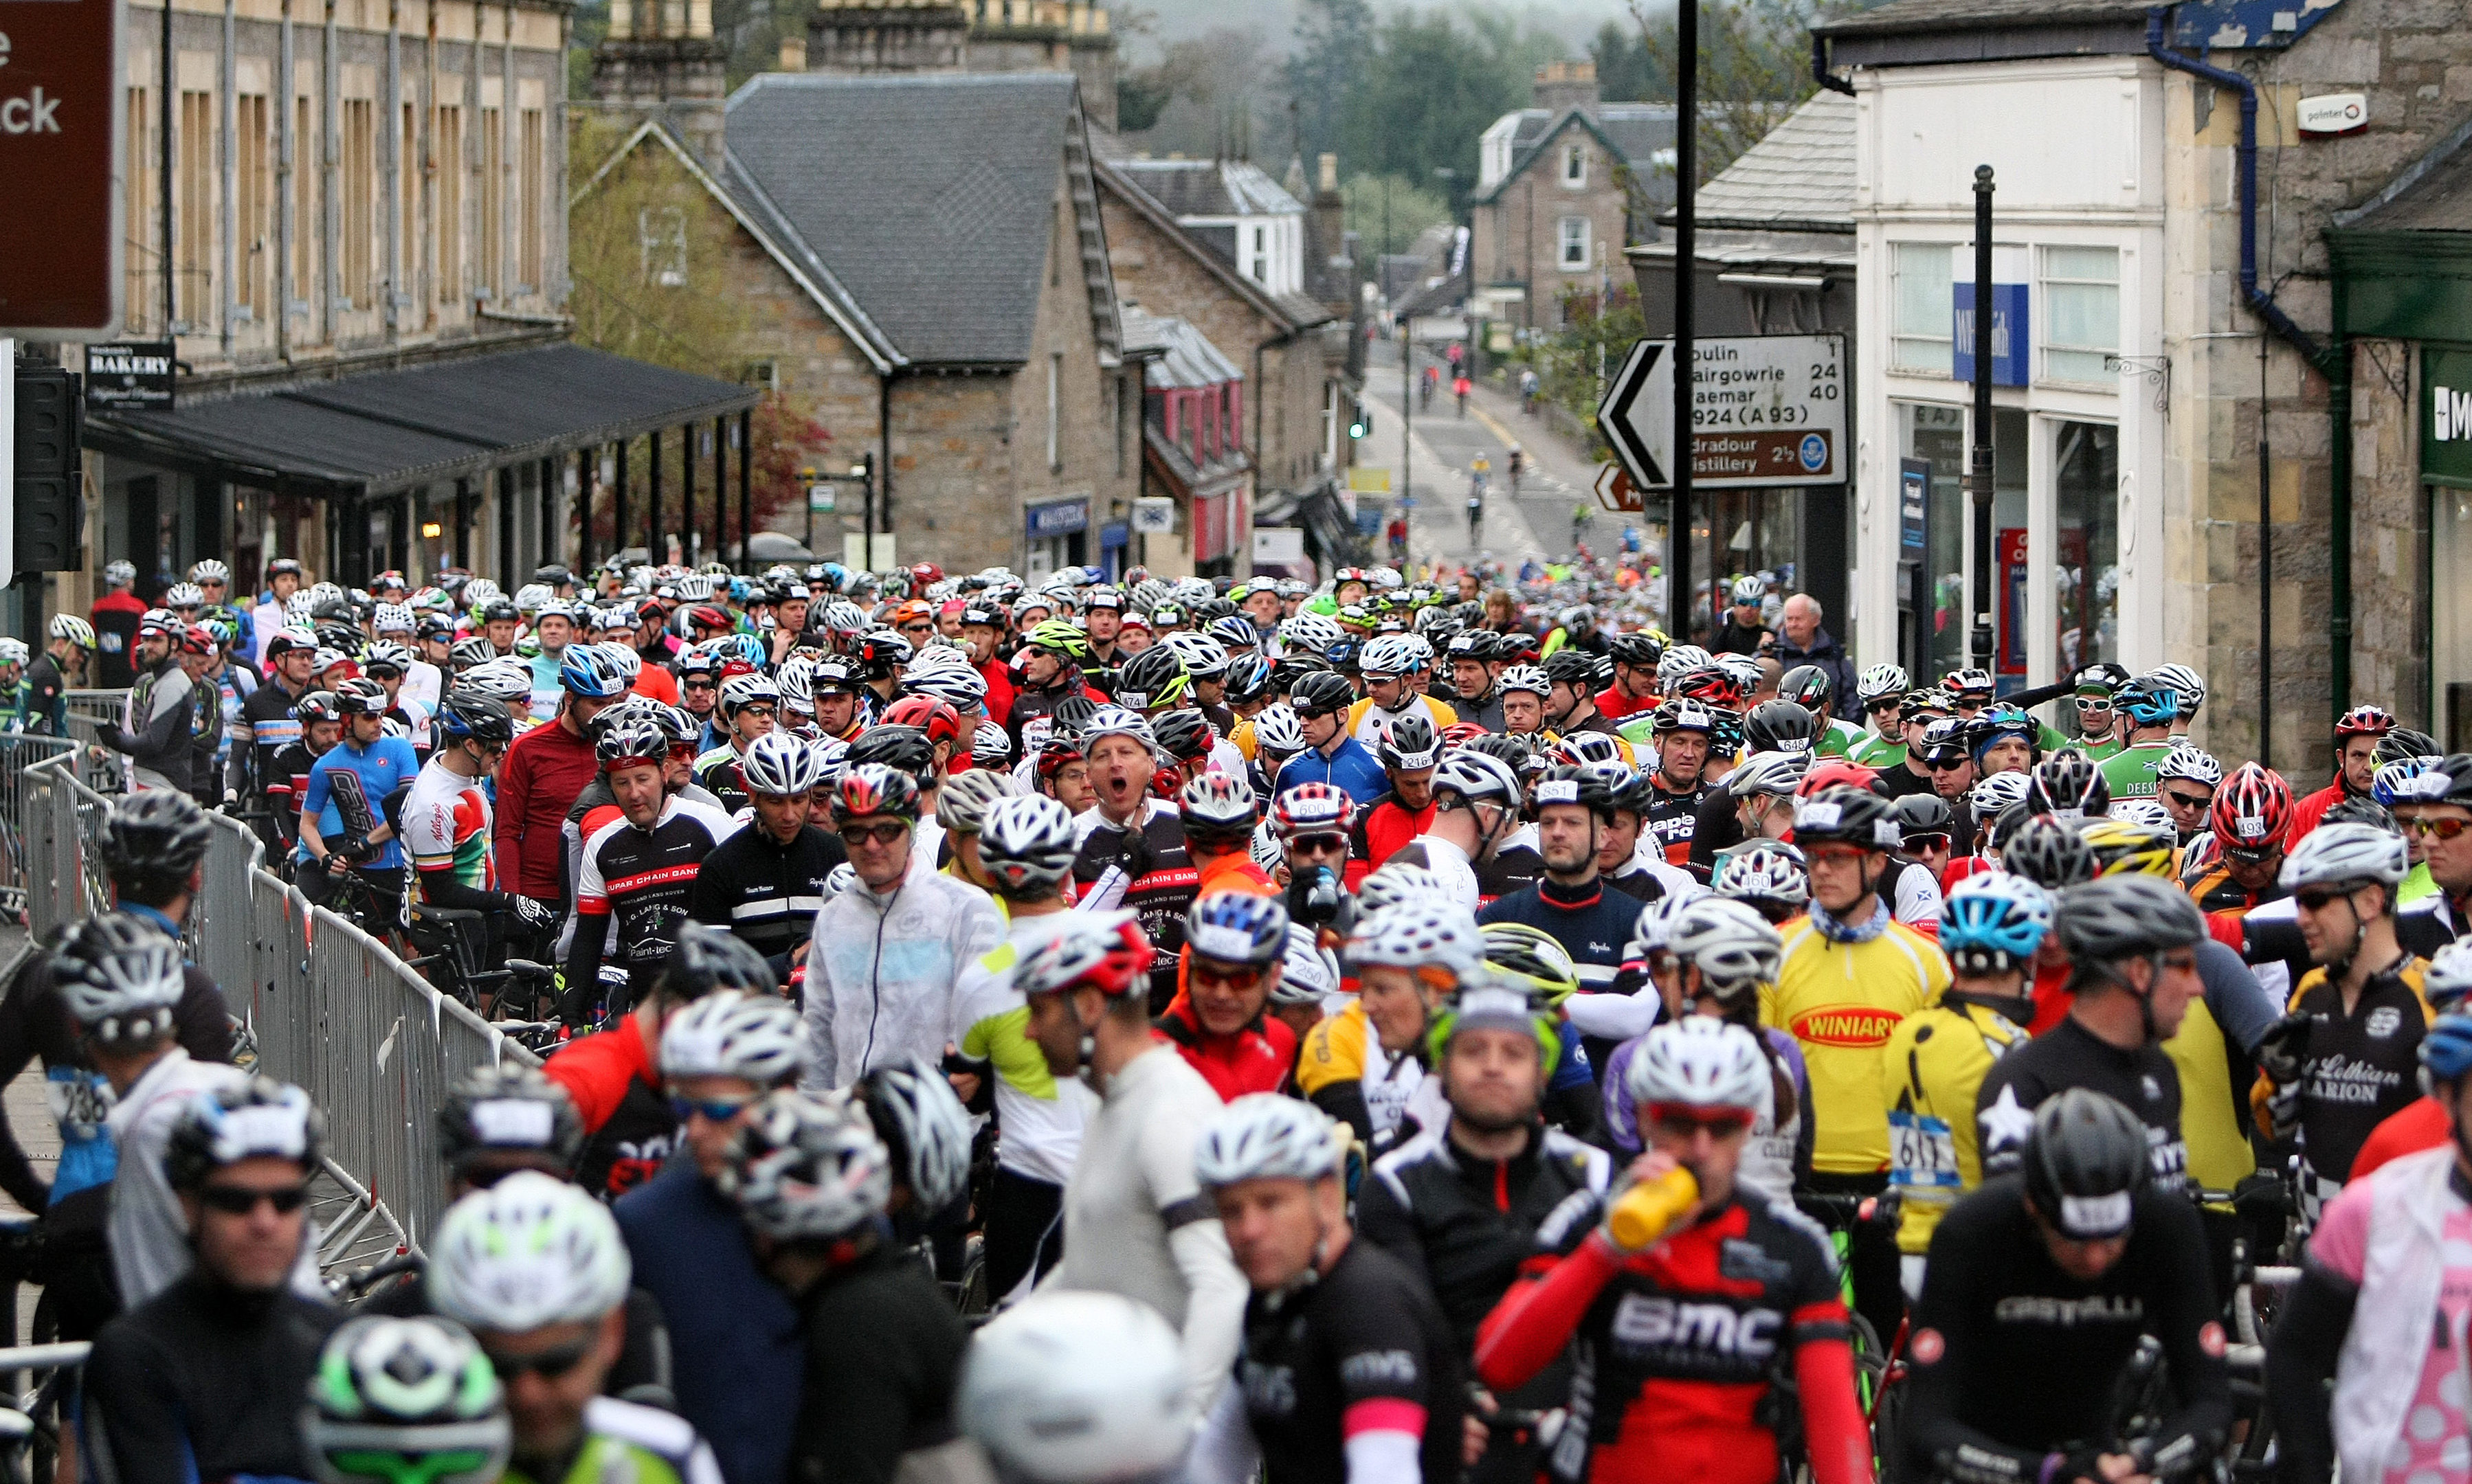 Cyclists get ready for the 2016 Etape.